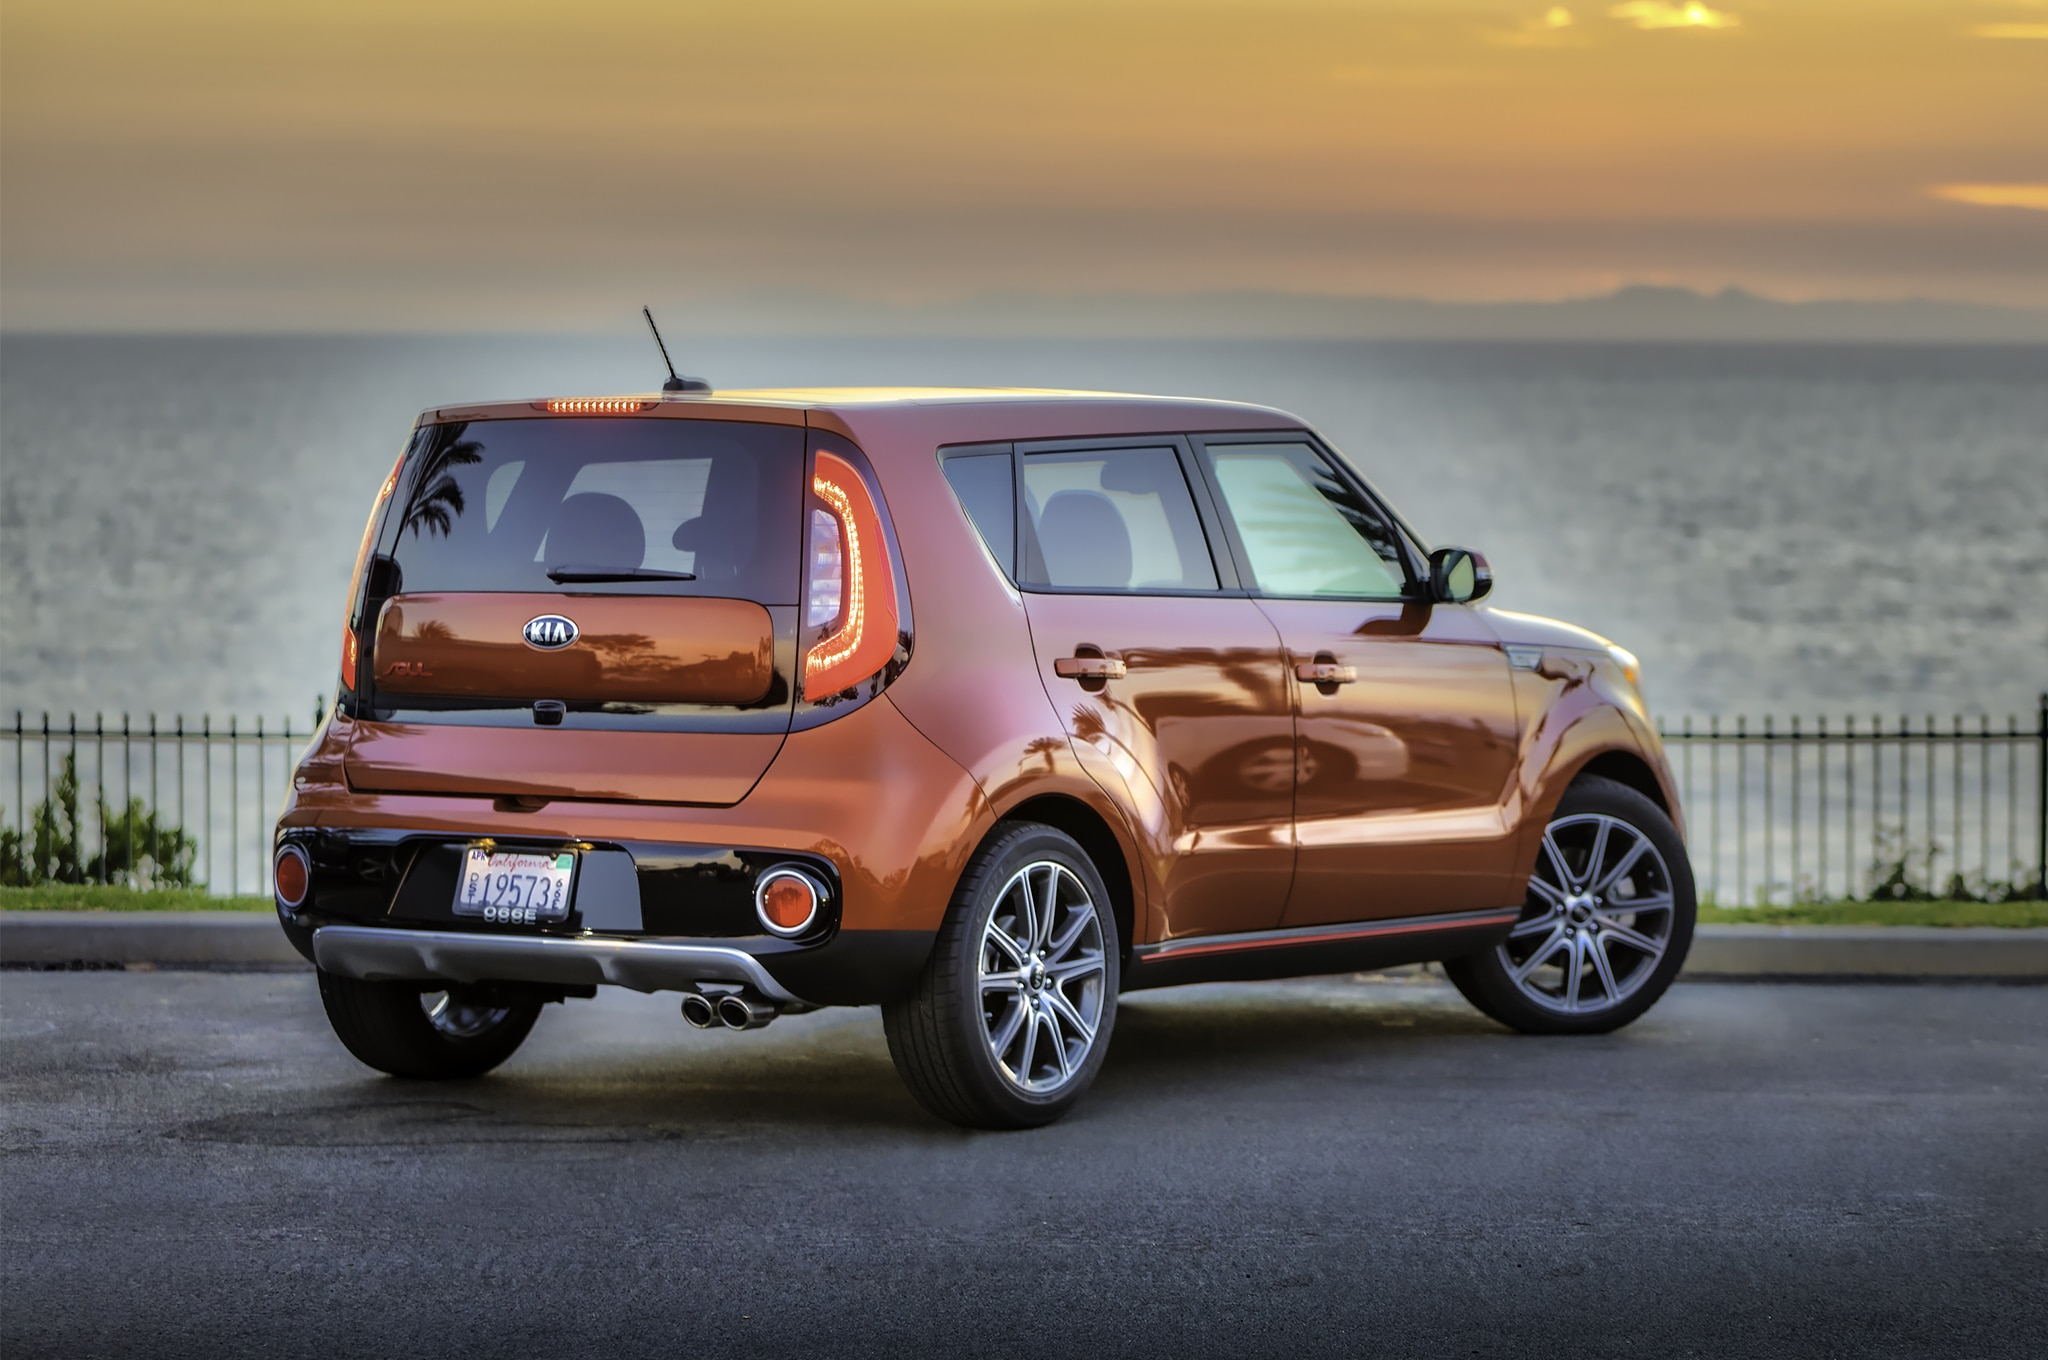 2017 Kia Soul Turbo rear three quarter